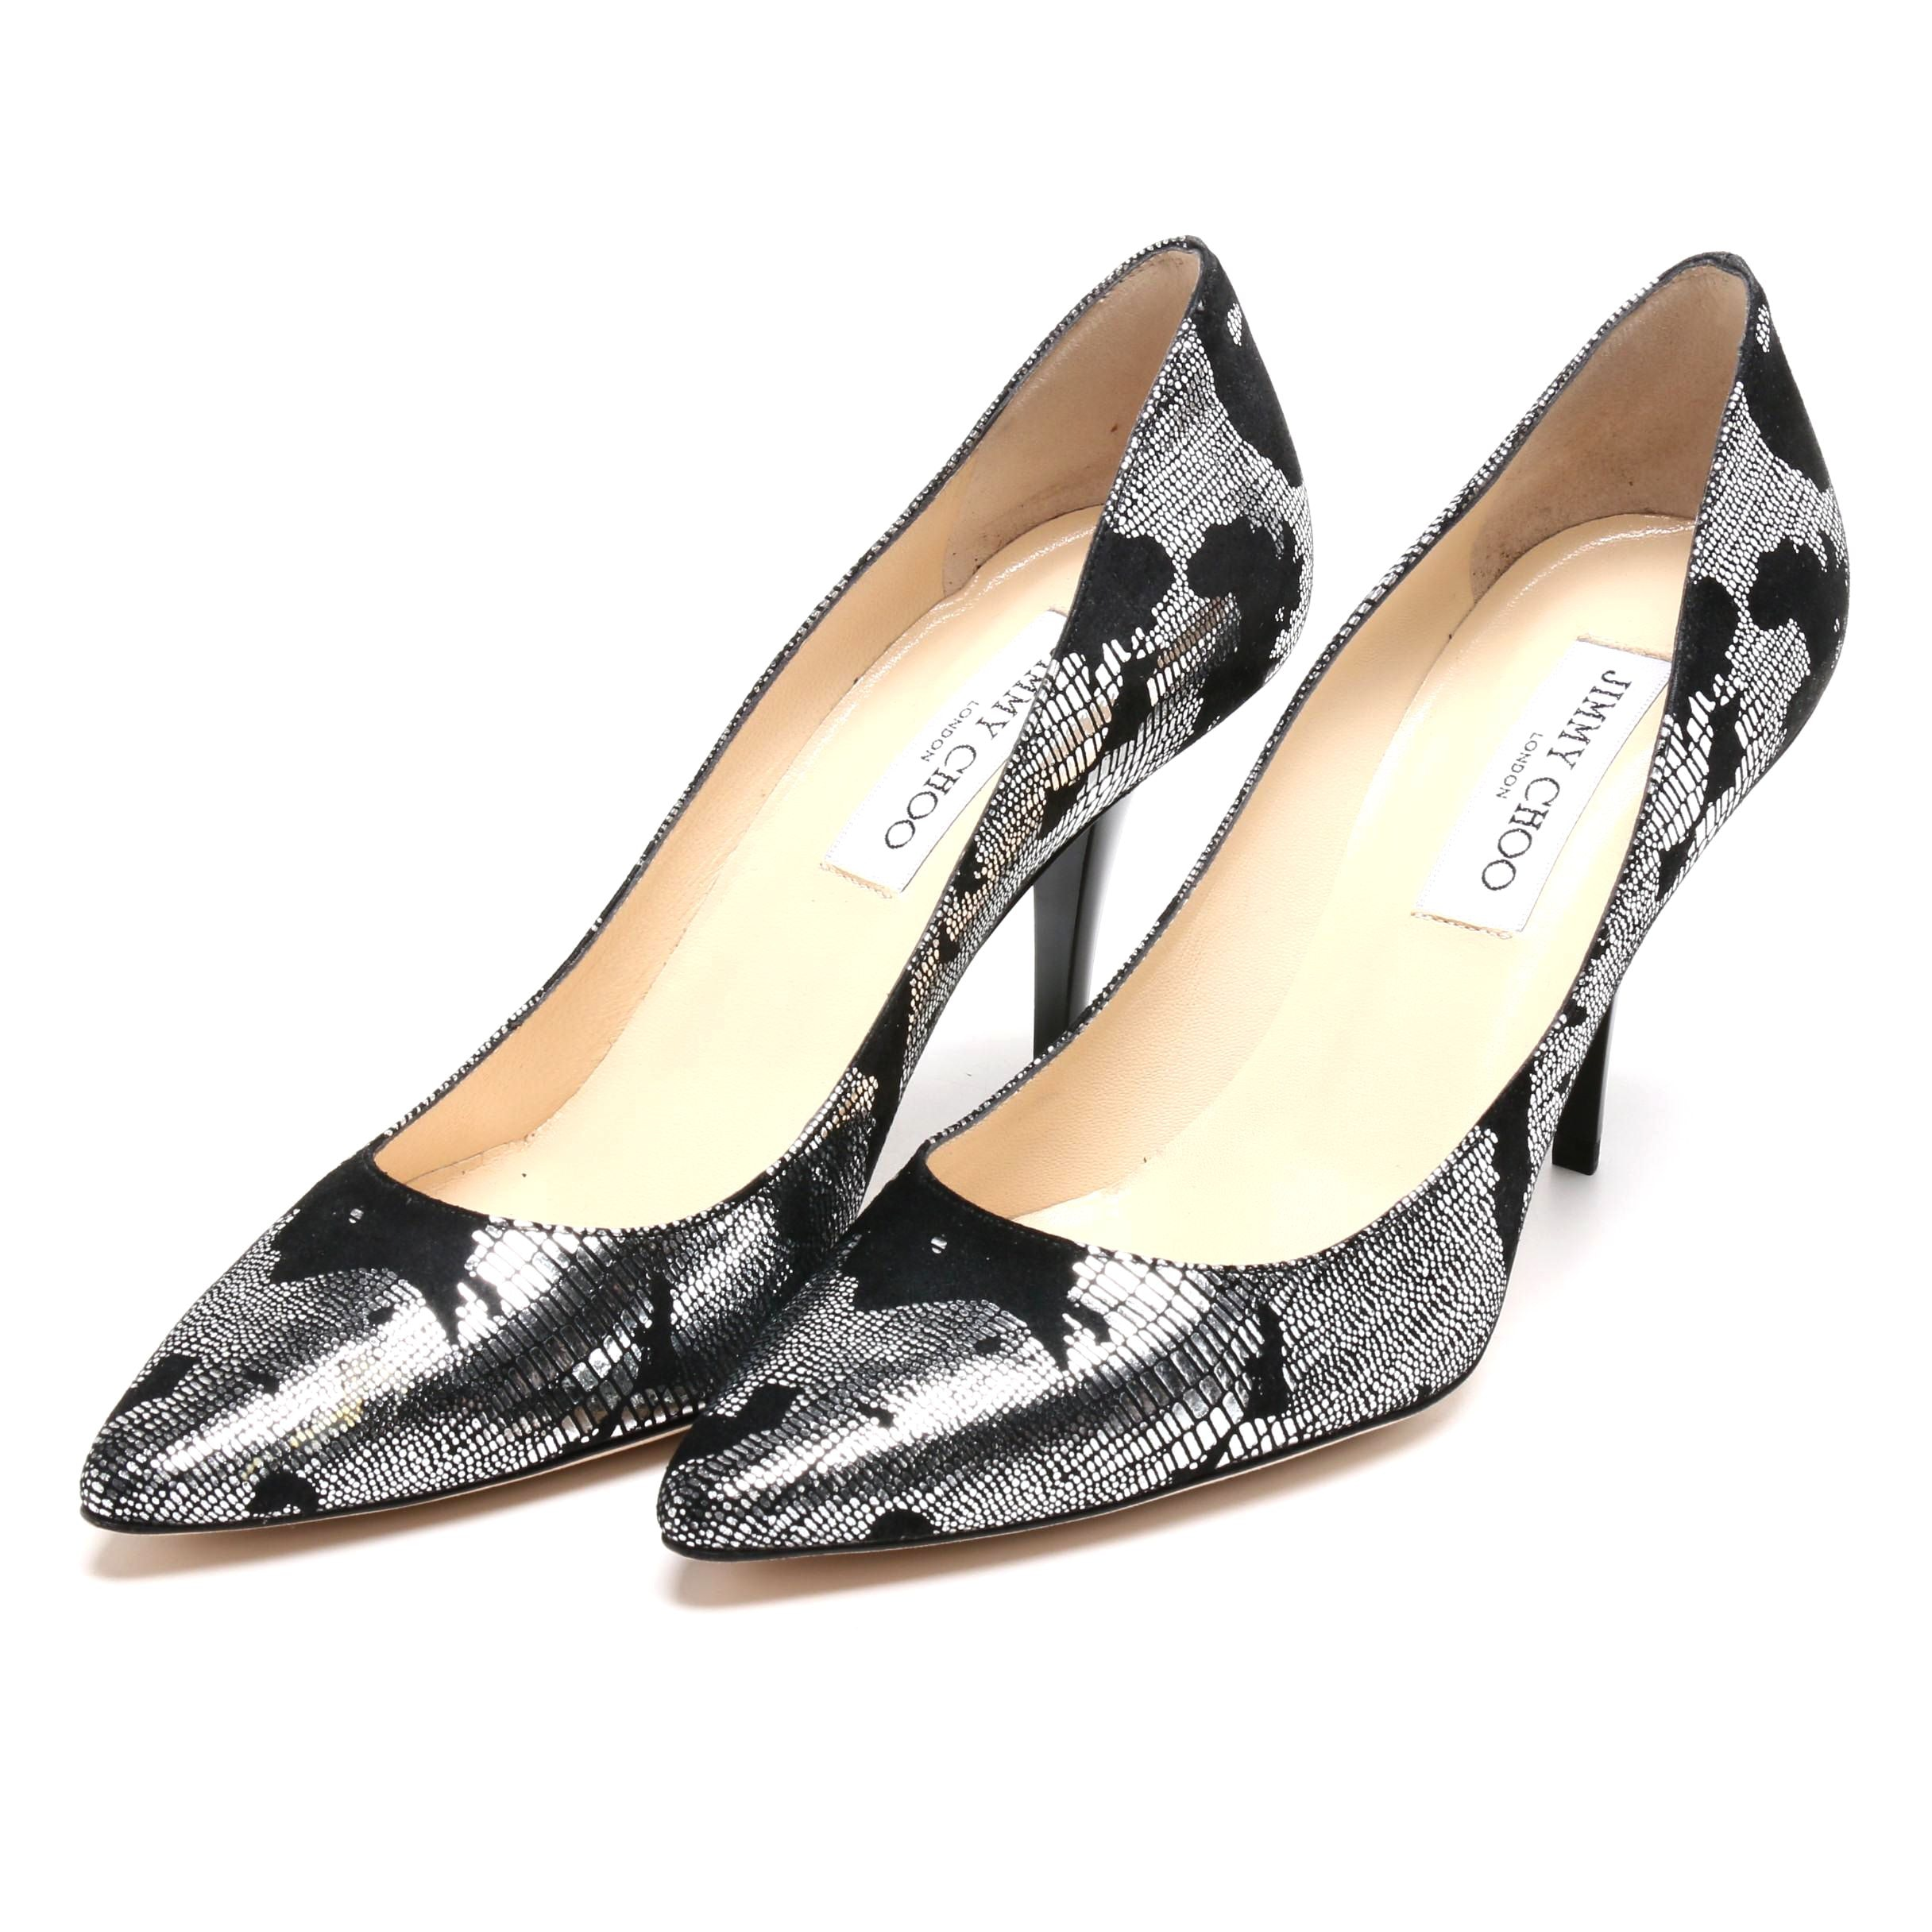 Jimmy Choo London Black Leather Pumps with Metallic Silver Lizard Print